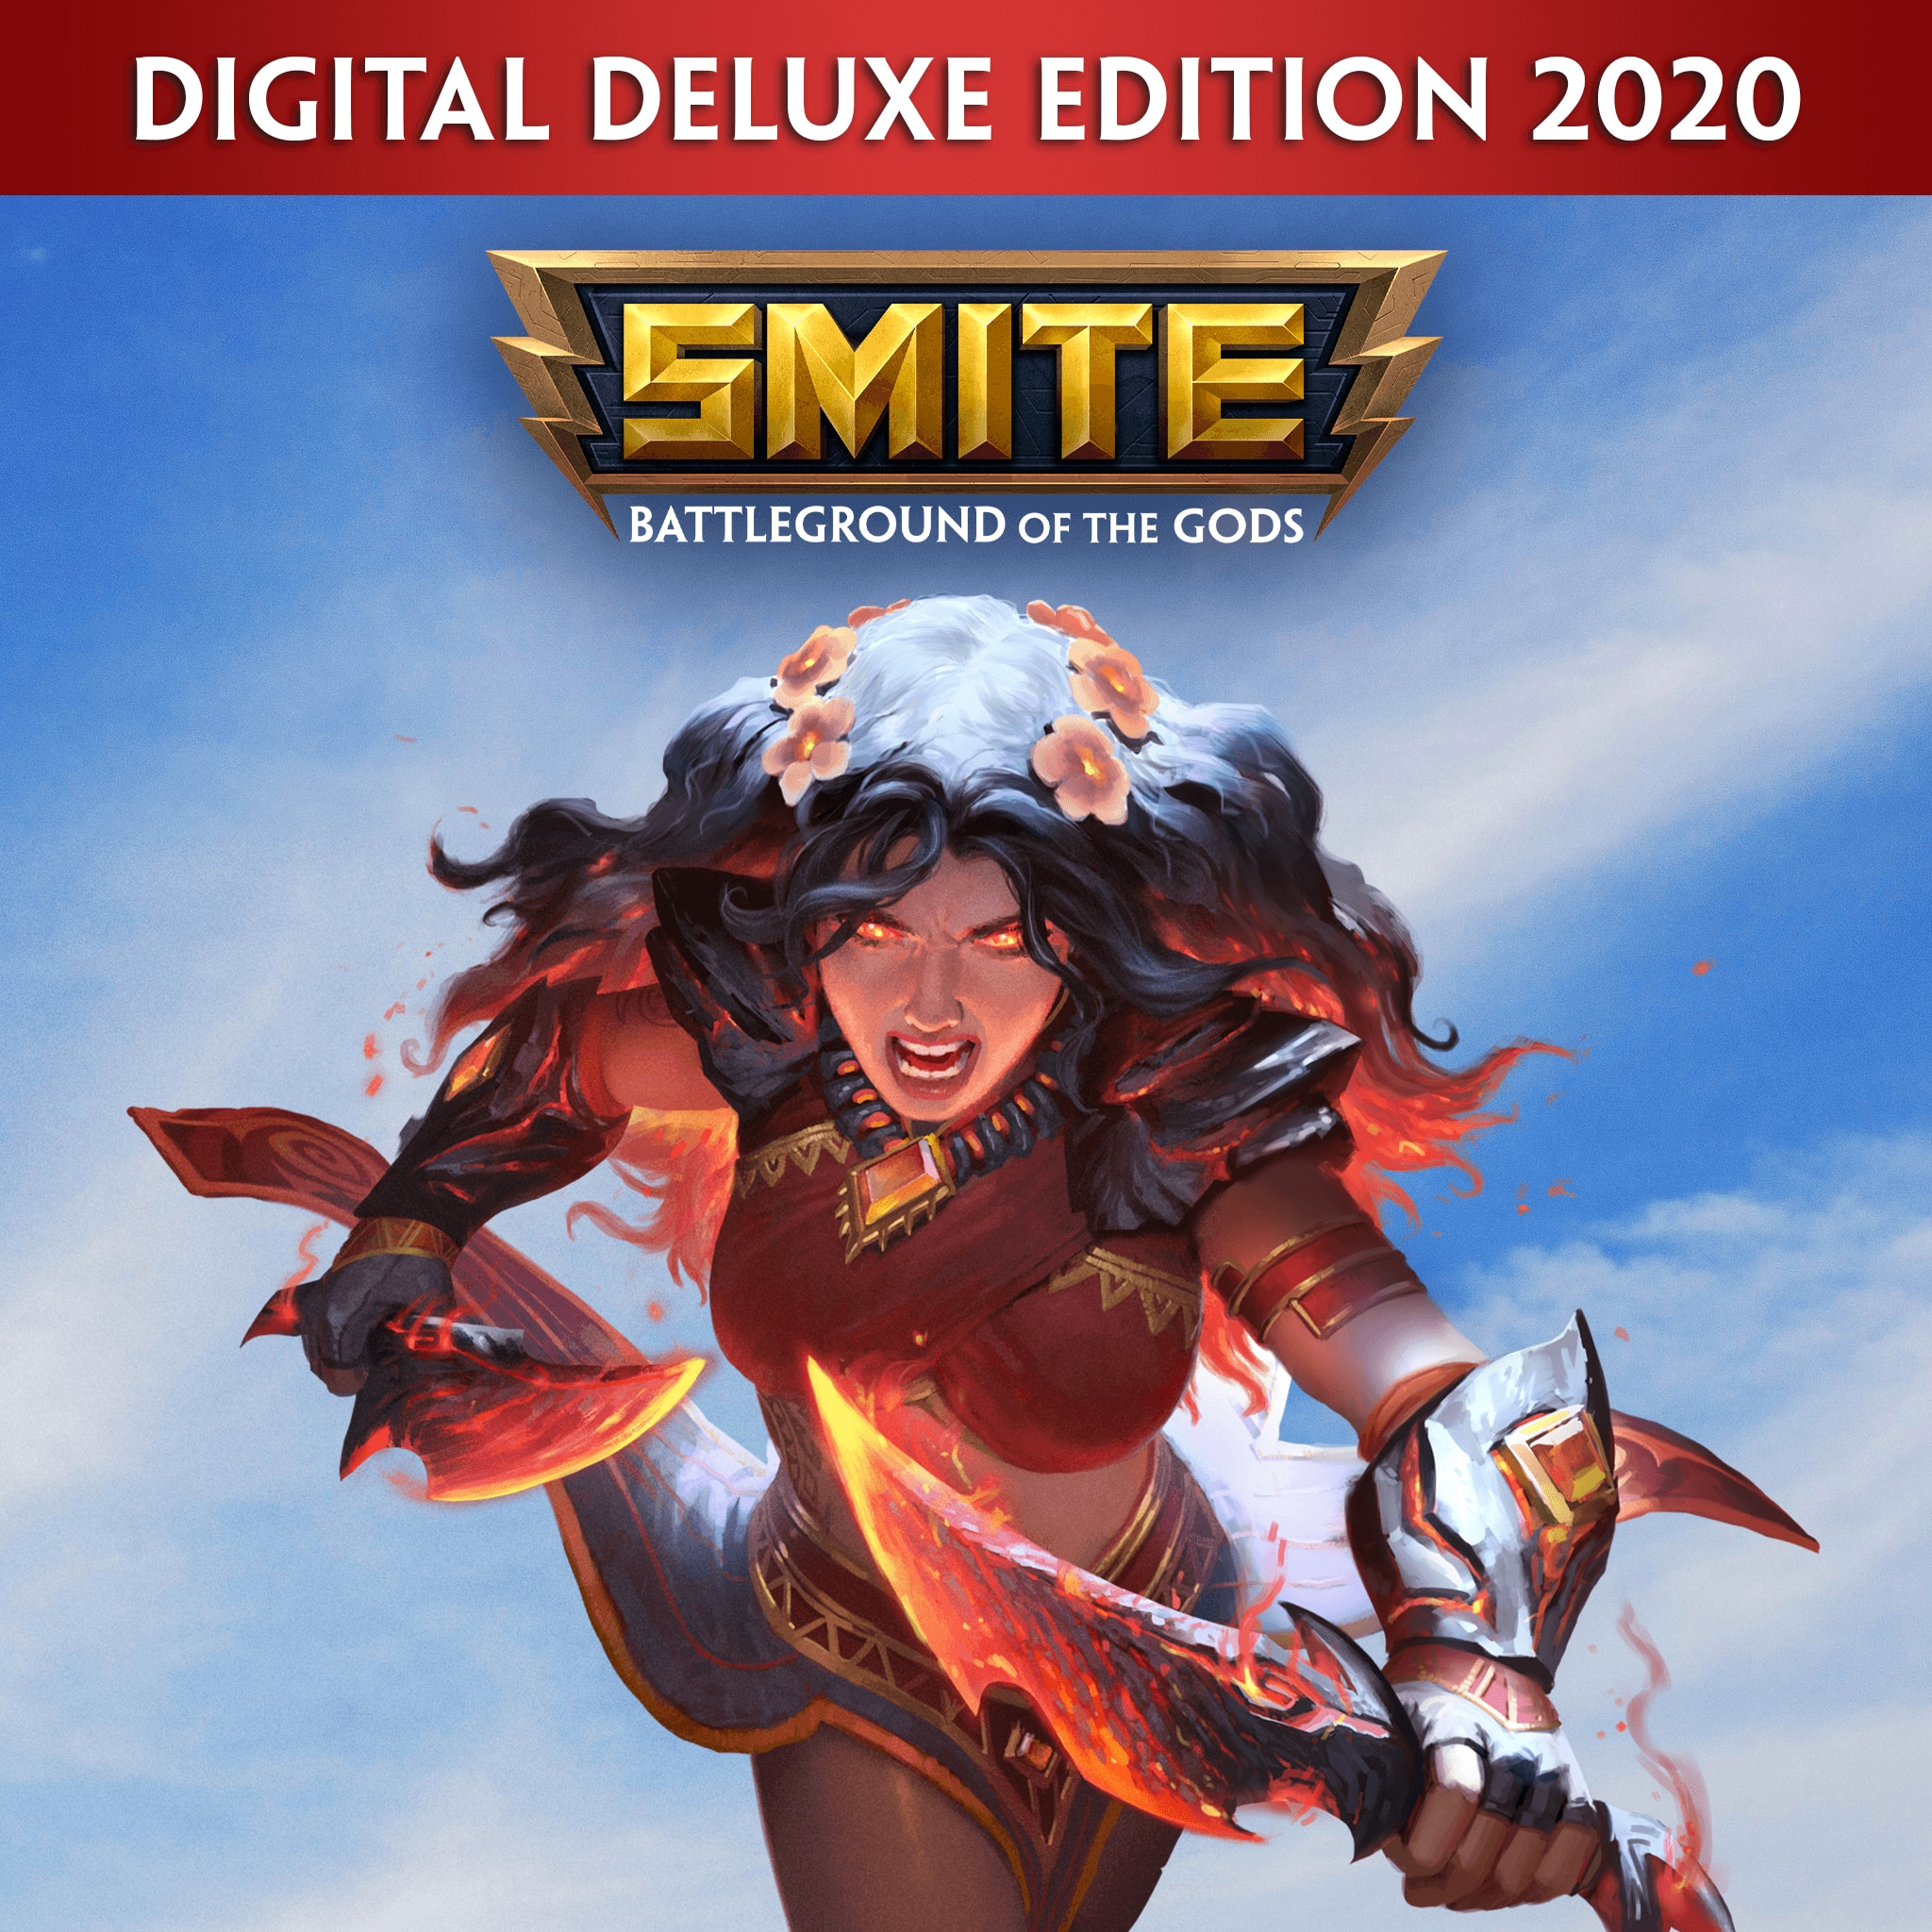 SMITE Digital Deluxe Edition 2020